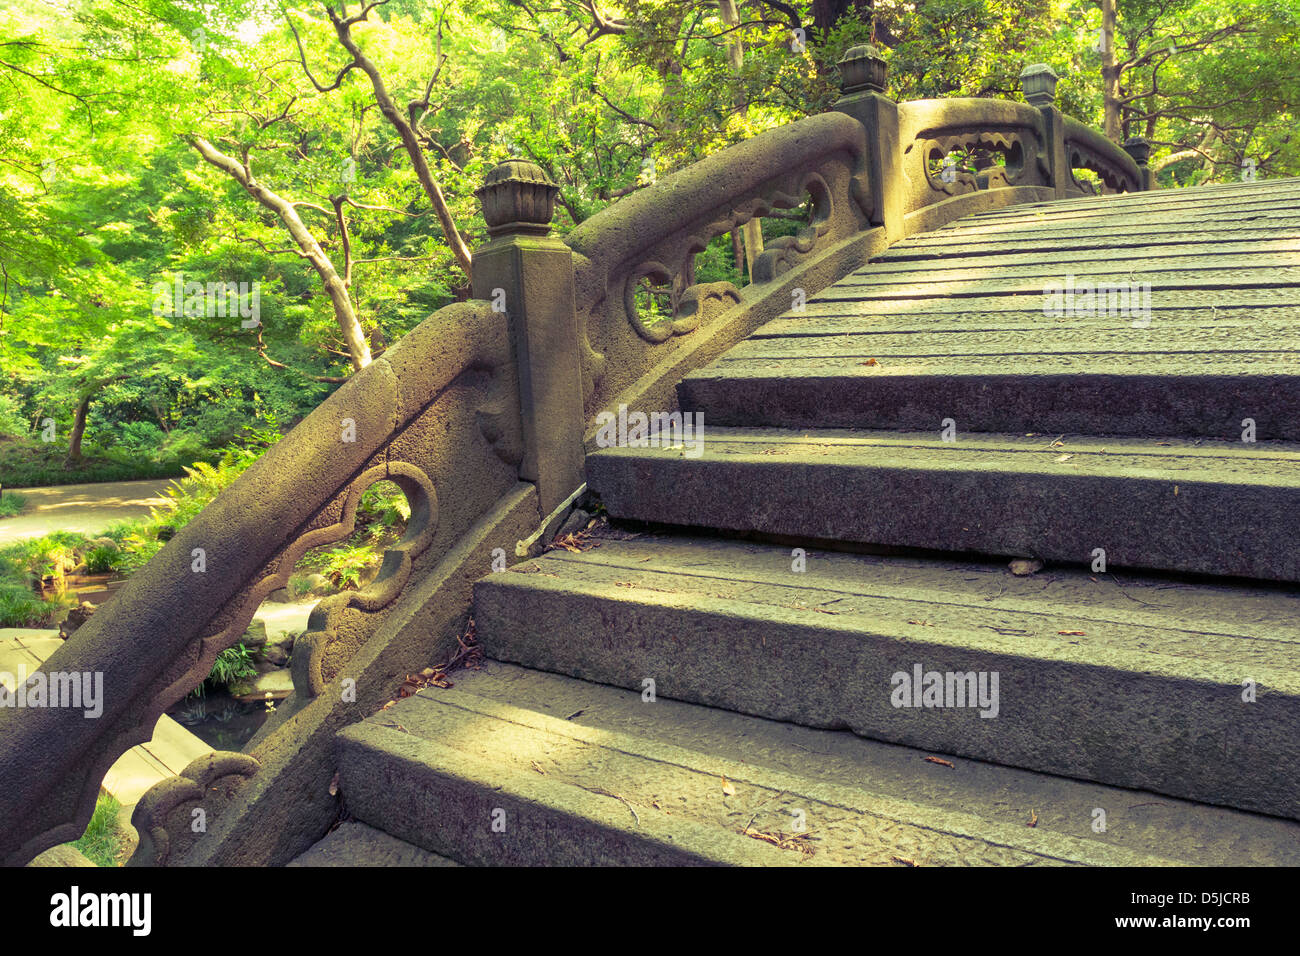 stone humpbacked bridge fragment with carved handrails in Japanese zen garden - Stock Image